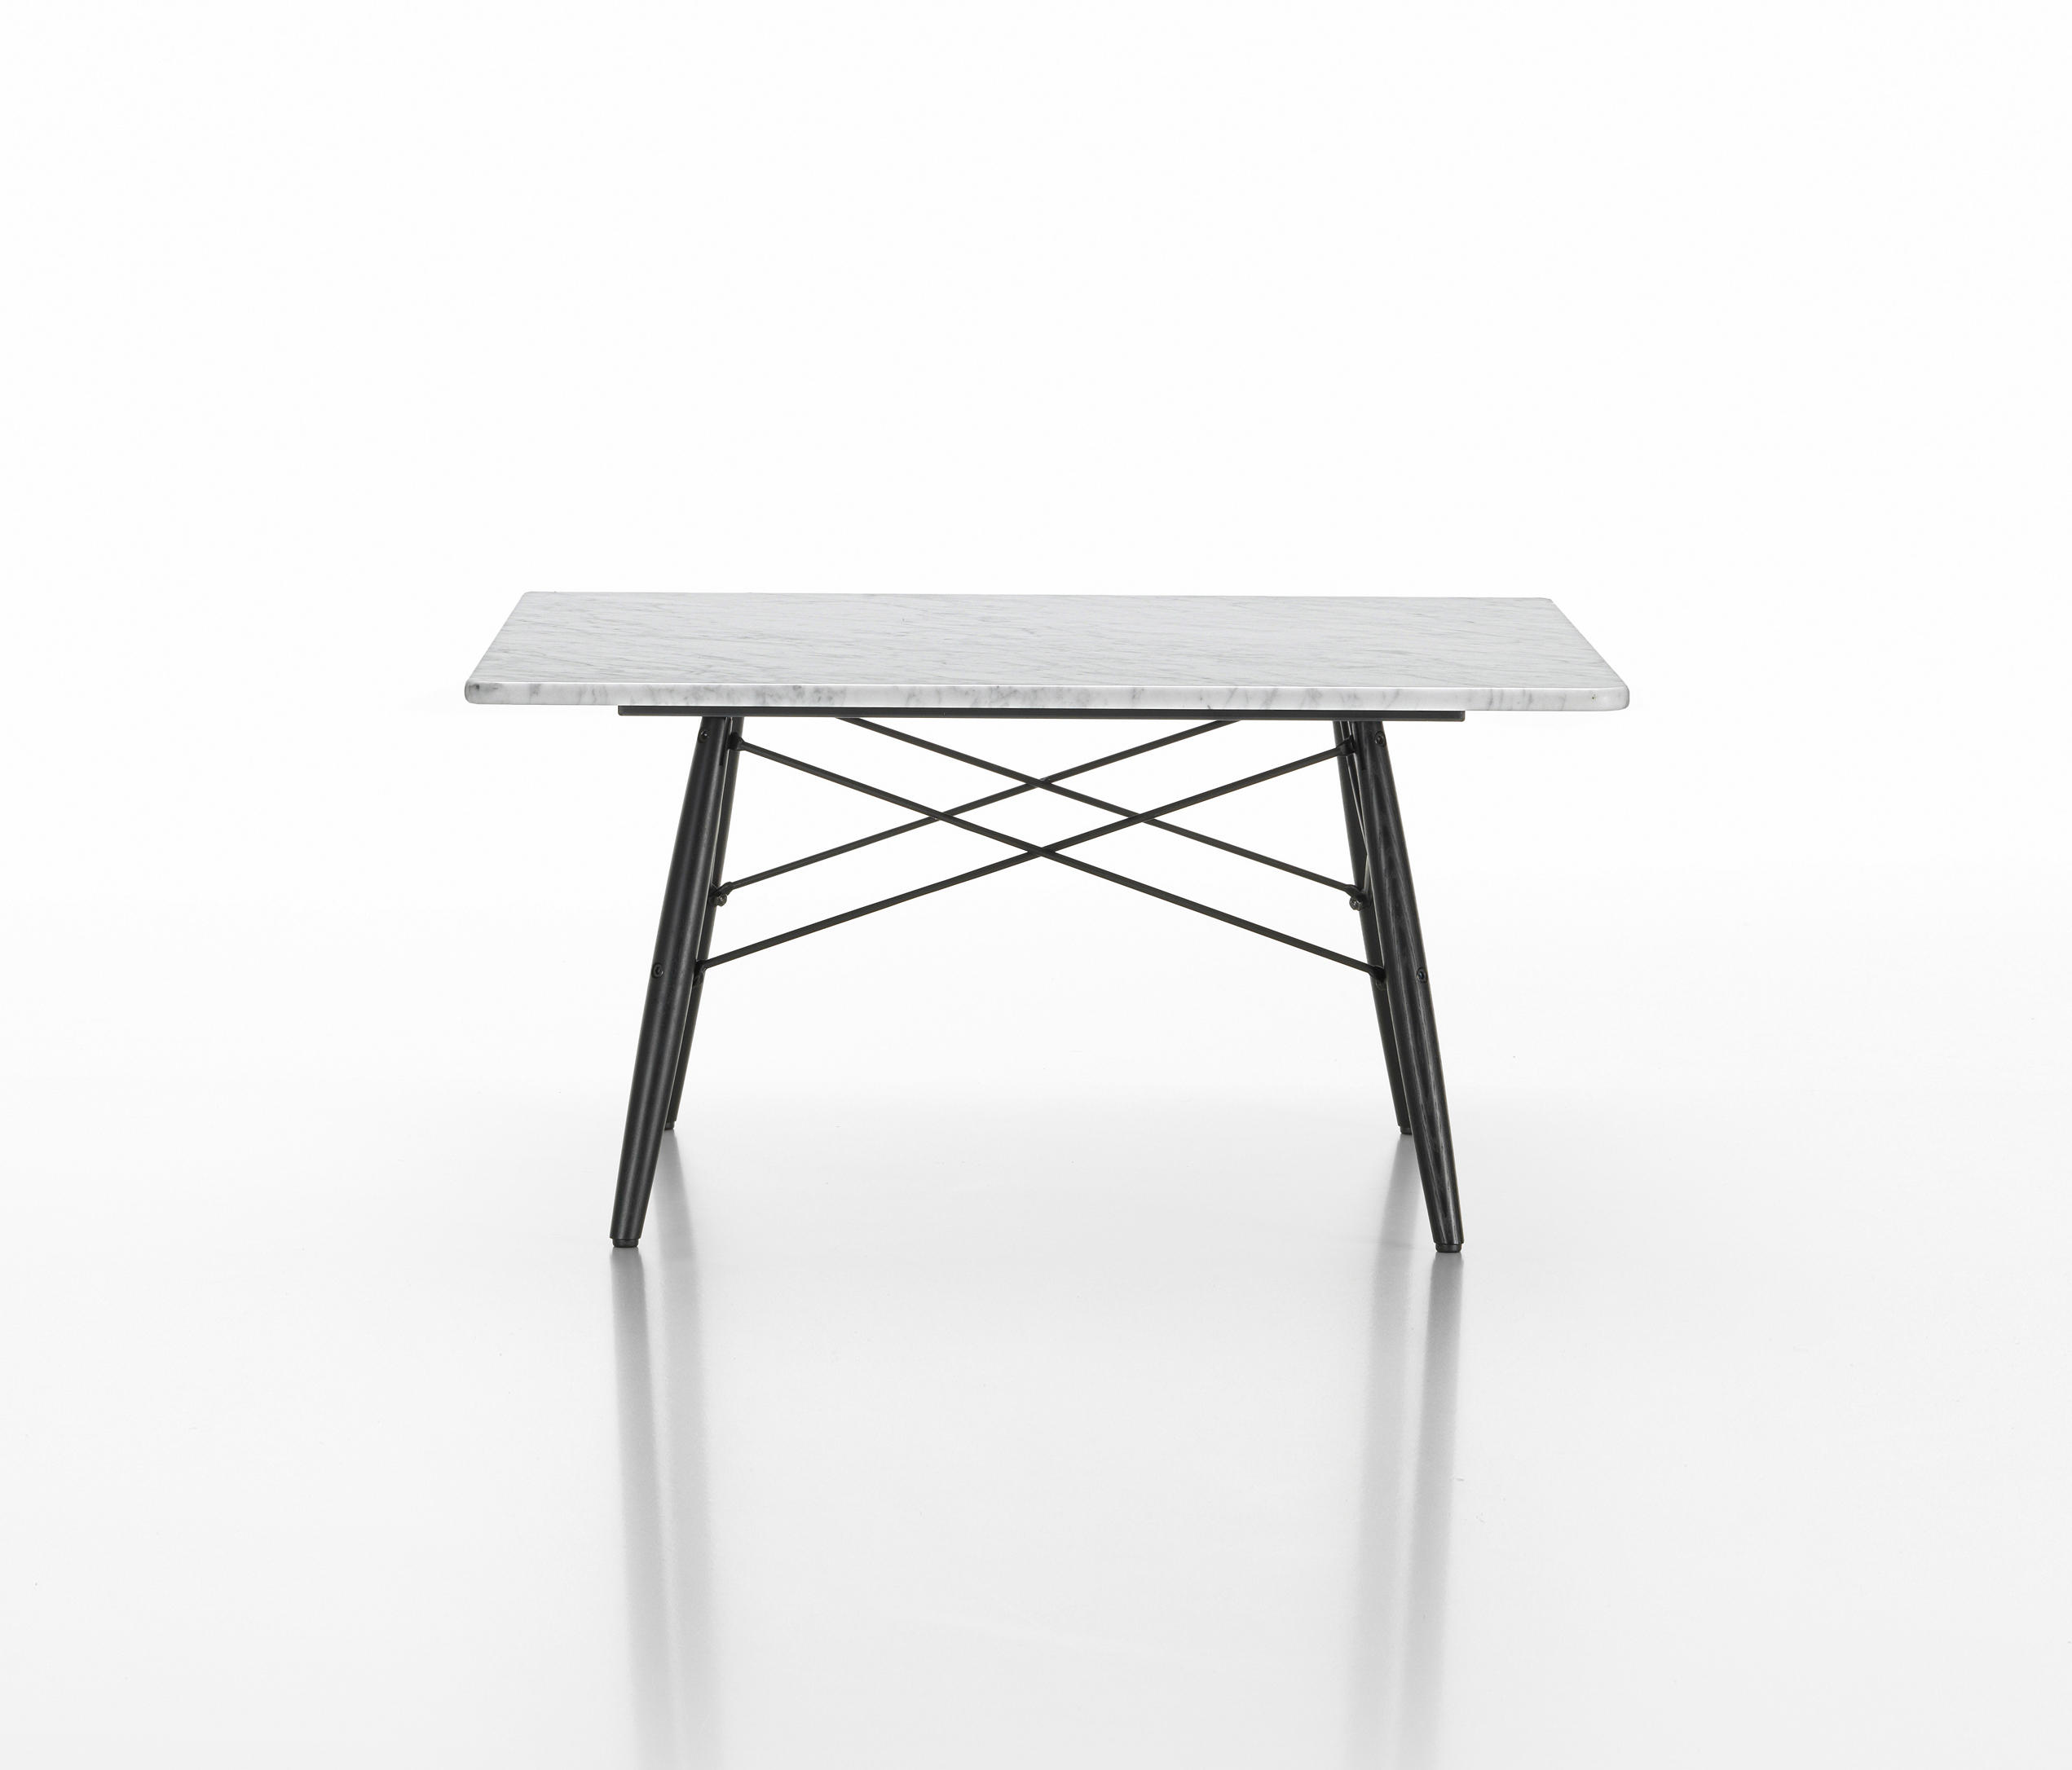 Eames Marble Coffee Table: EAMES COFFEE TABLE - Coffee Tables From Vitra